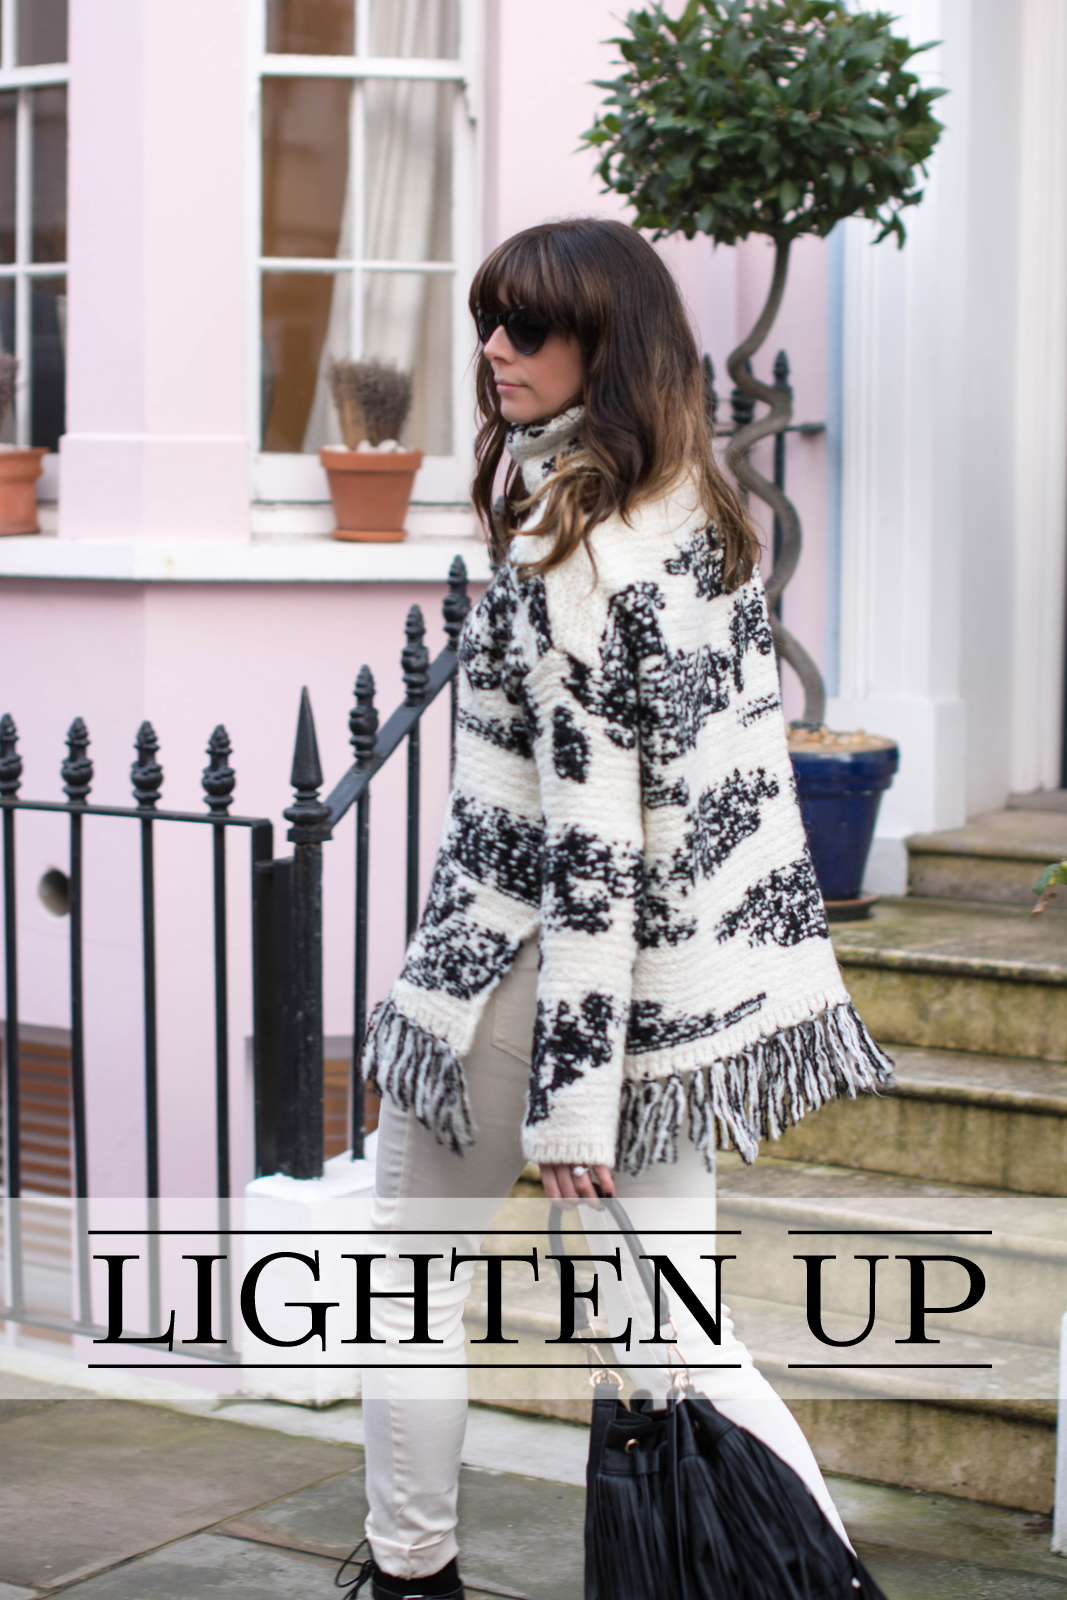 EJSTYLE - Zara fringe black white jumper, Zara TRF white jeans, Isabel Marant Inspired look, H&M fringed bucket bag, OOTD, fashion blogger, street style